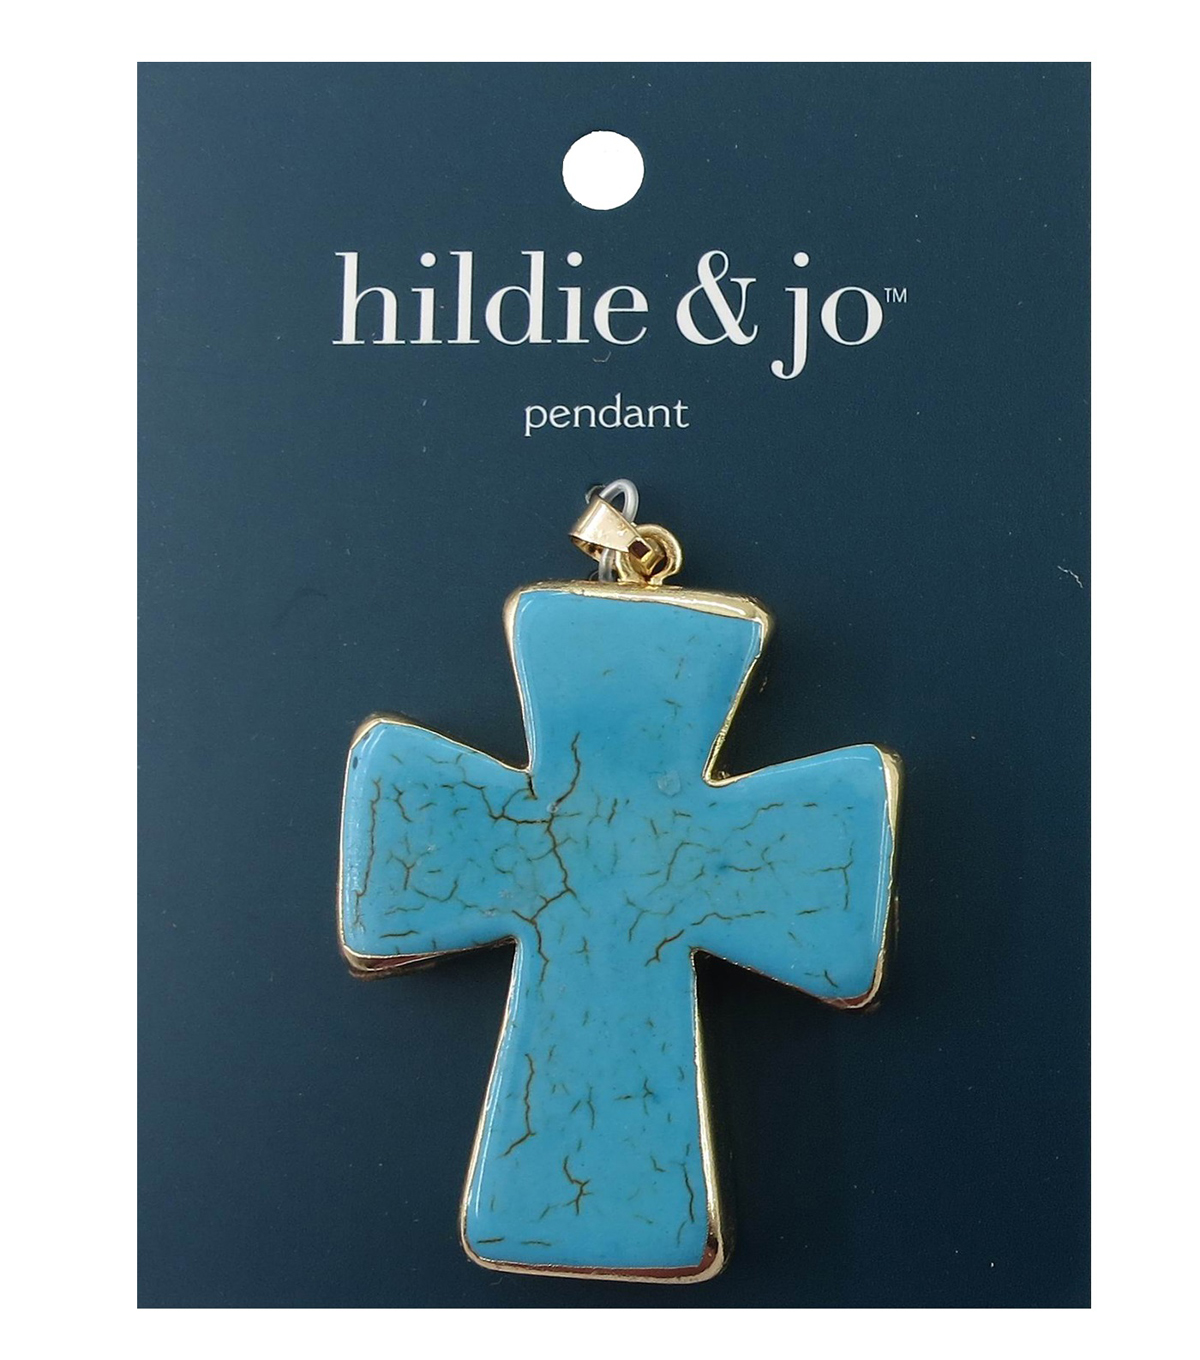 hildie & jo™ 1.88''x1.5'' Cross Gold Pendant-Turquoise